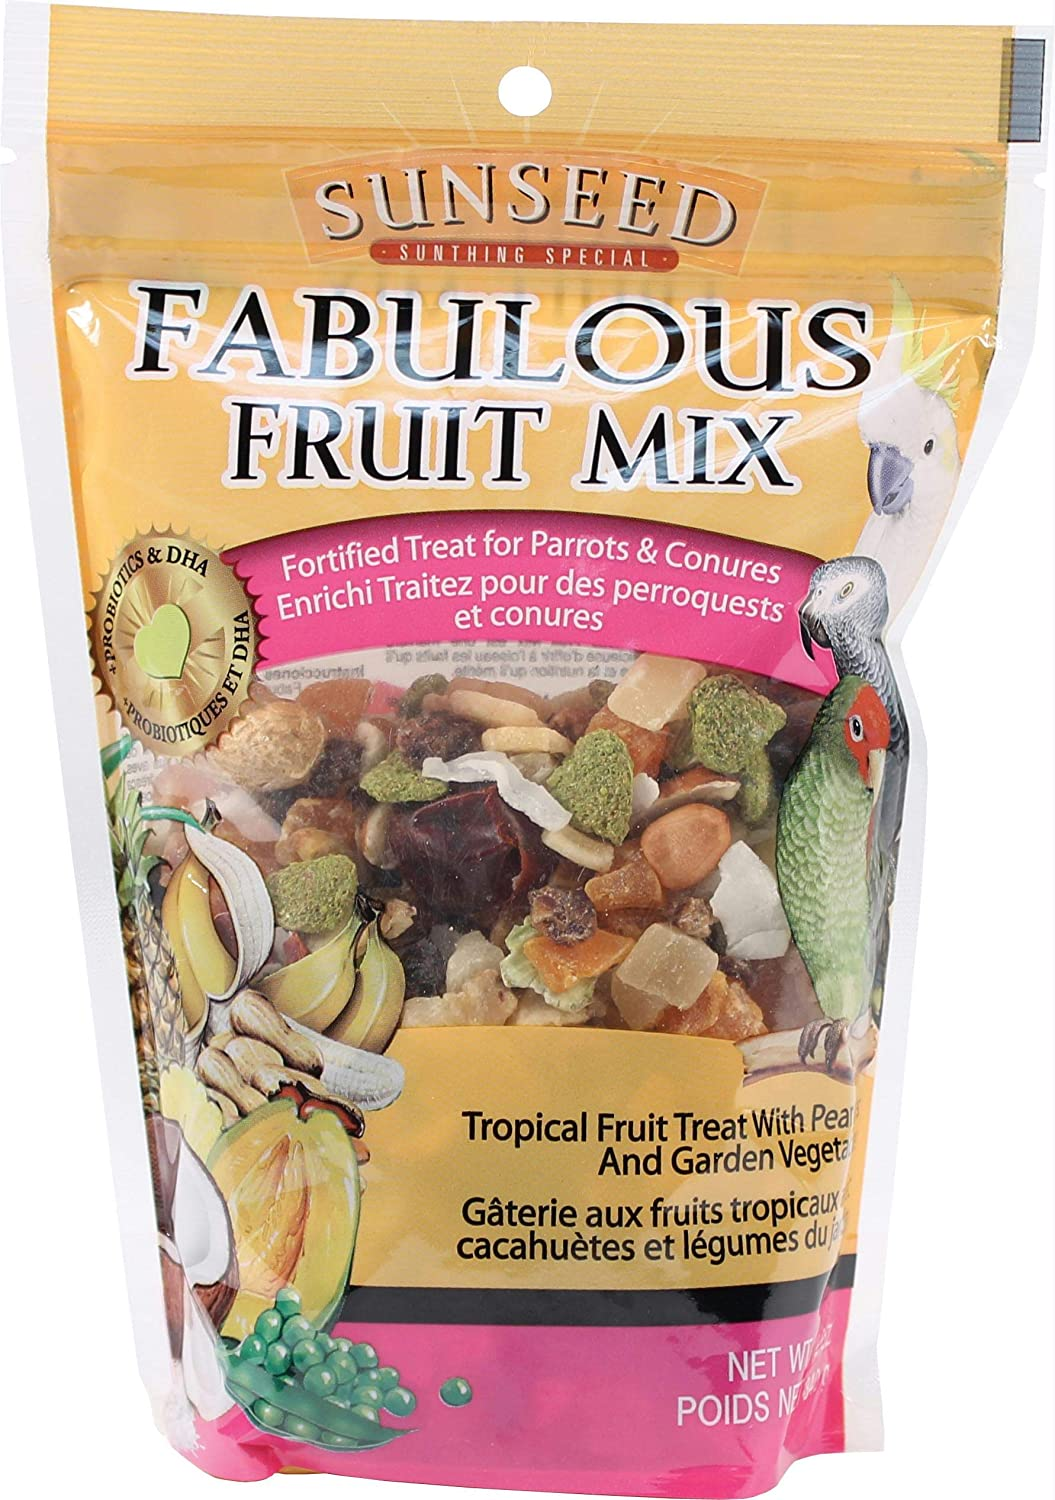 Sunseed Fabulous Fruit Mix for Parrots & Conures